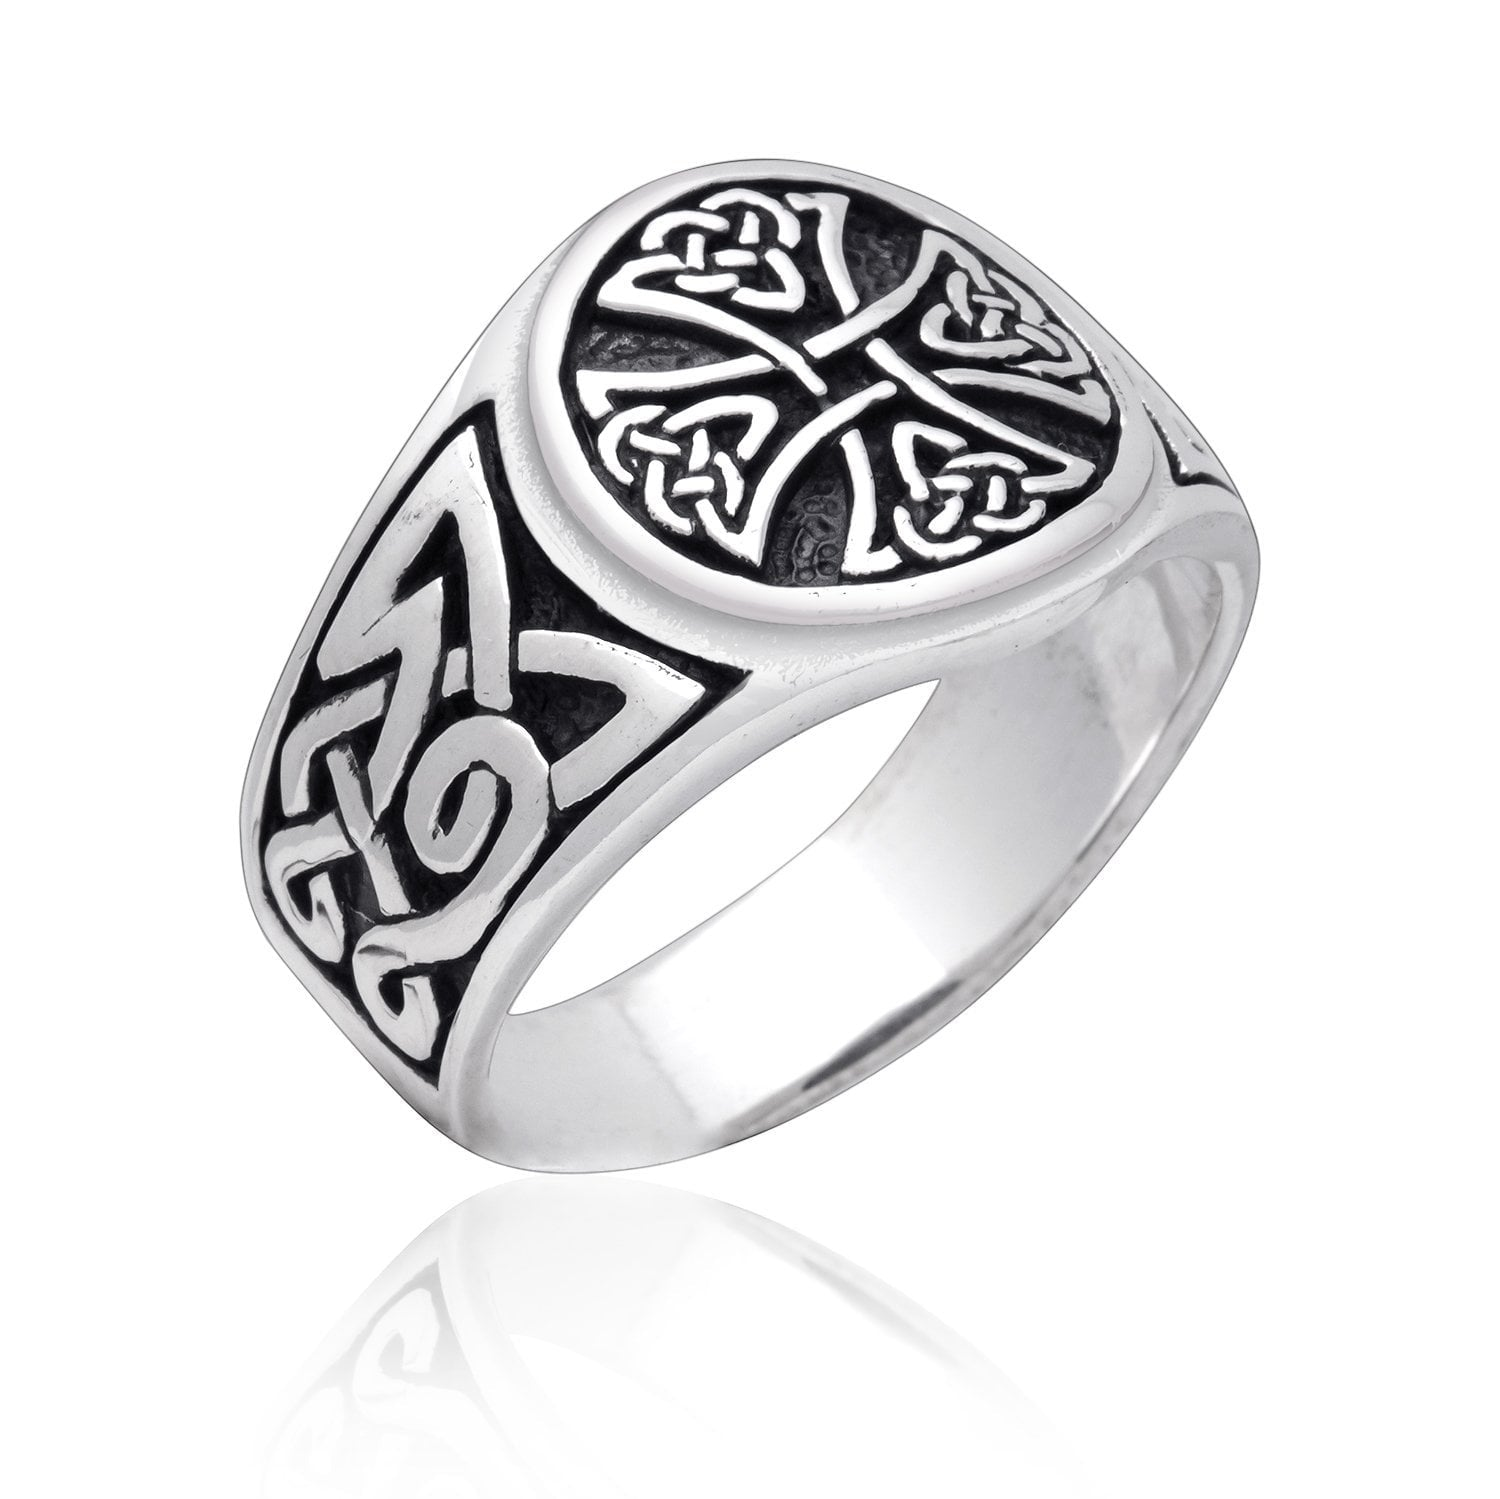 925 Sterling Silver Celtic Irish Knot Knights Templar Iron Cross Band Ring